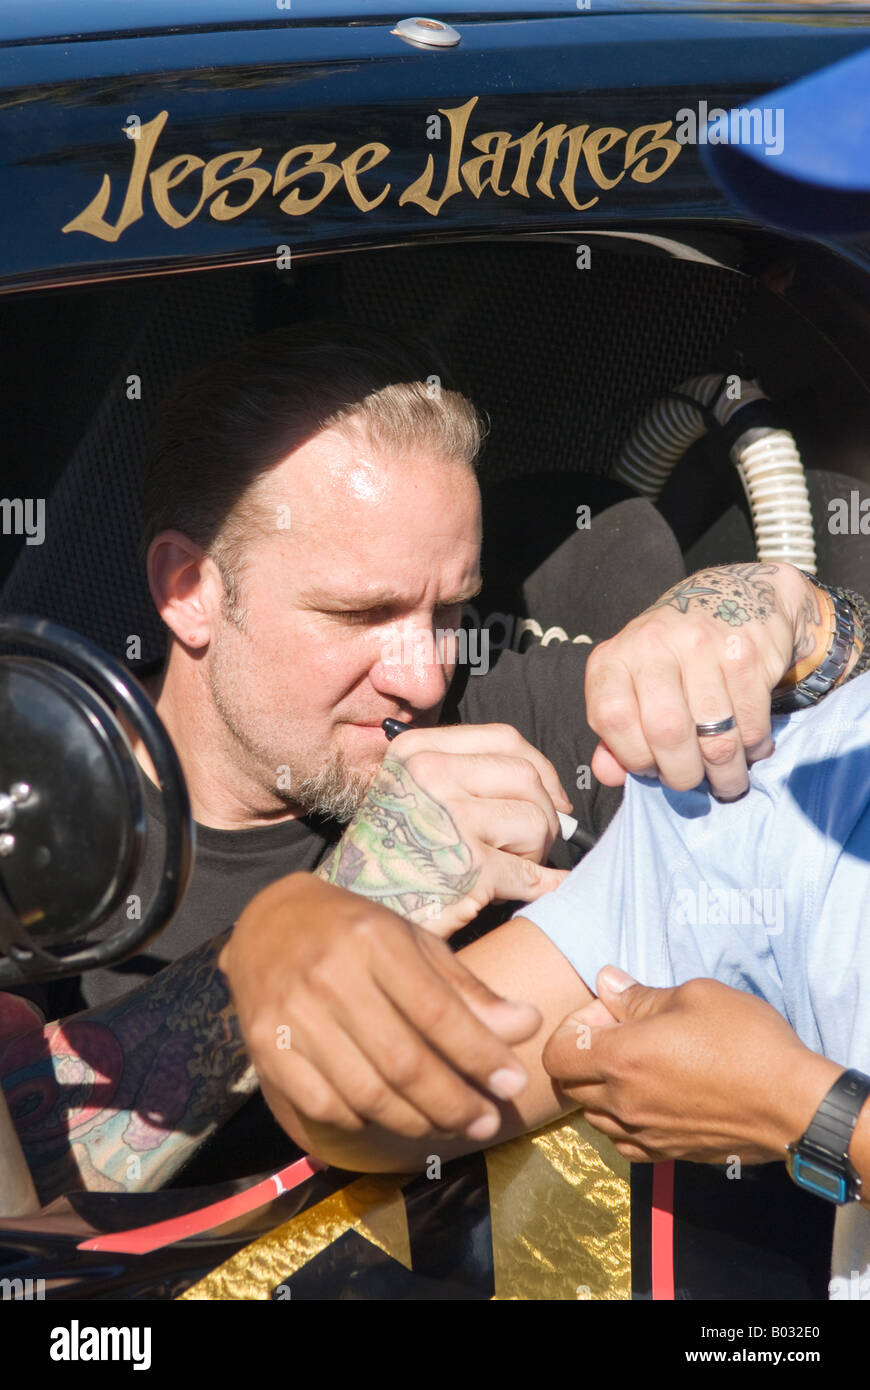 Jesse James signs autograph for race fan before start of 2007 Baja 1000, Ensenada, Mexico - Stock Image